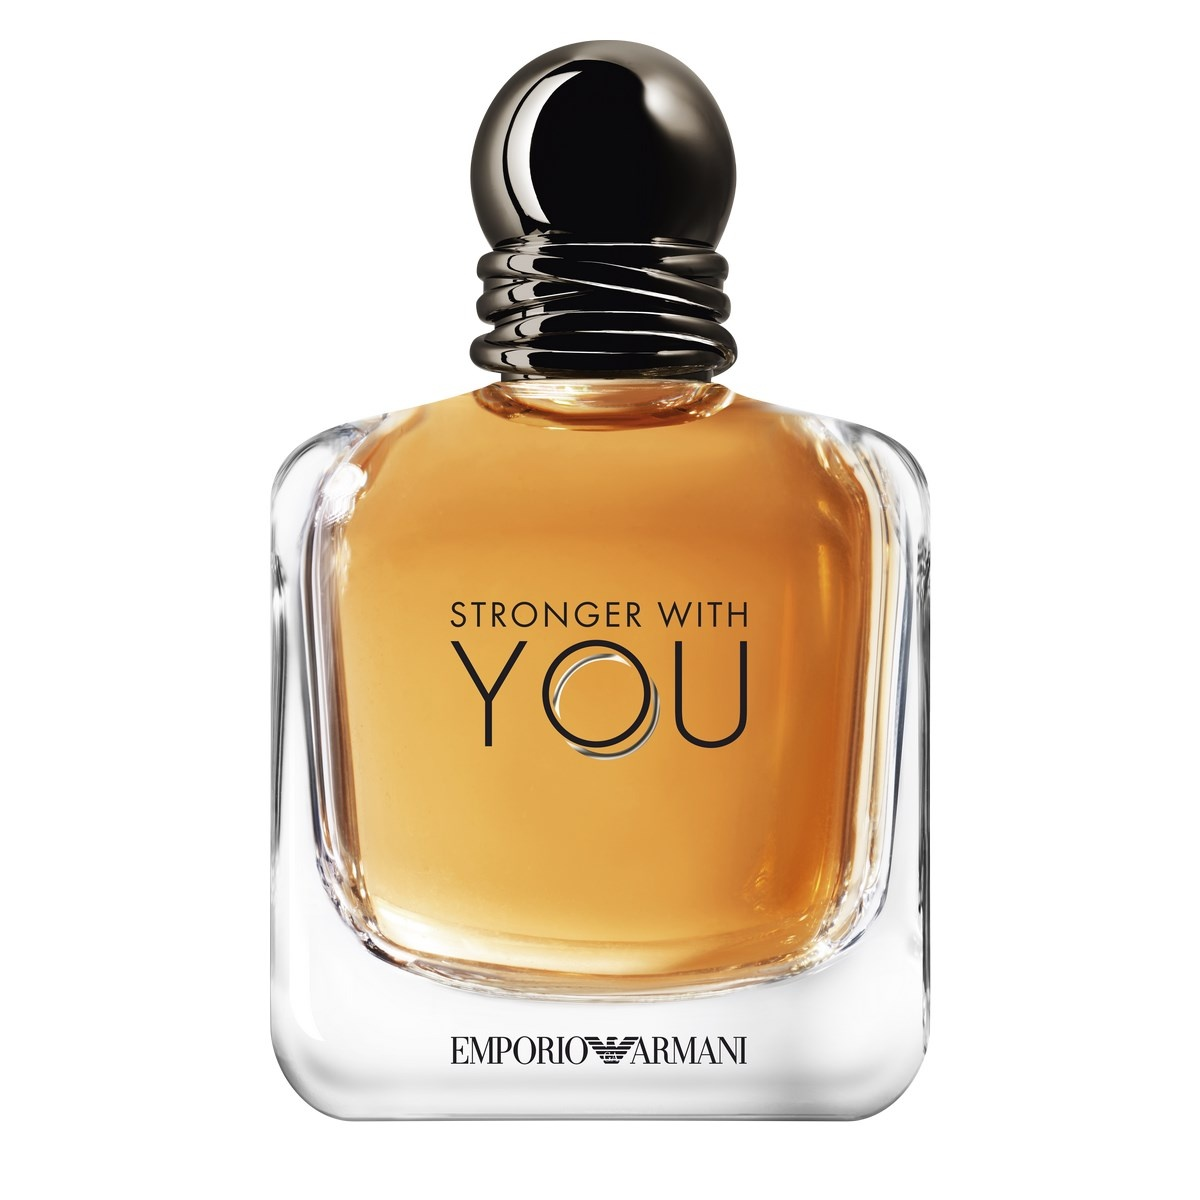 Giorgio Armani Stronger With You Homme EDT, 100 ml